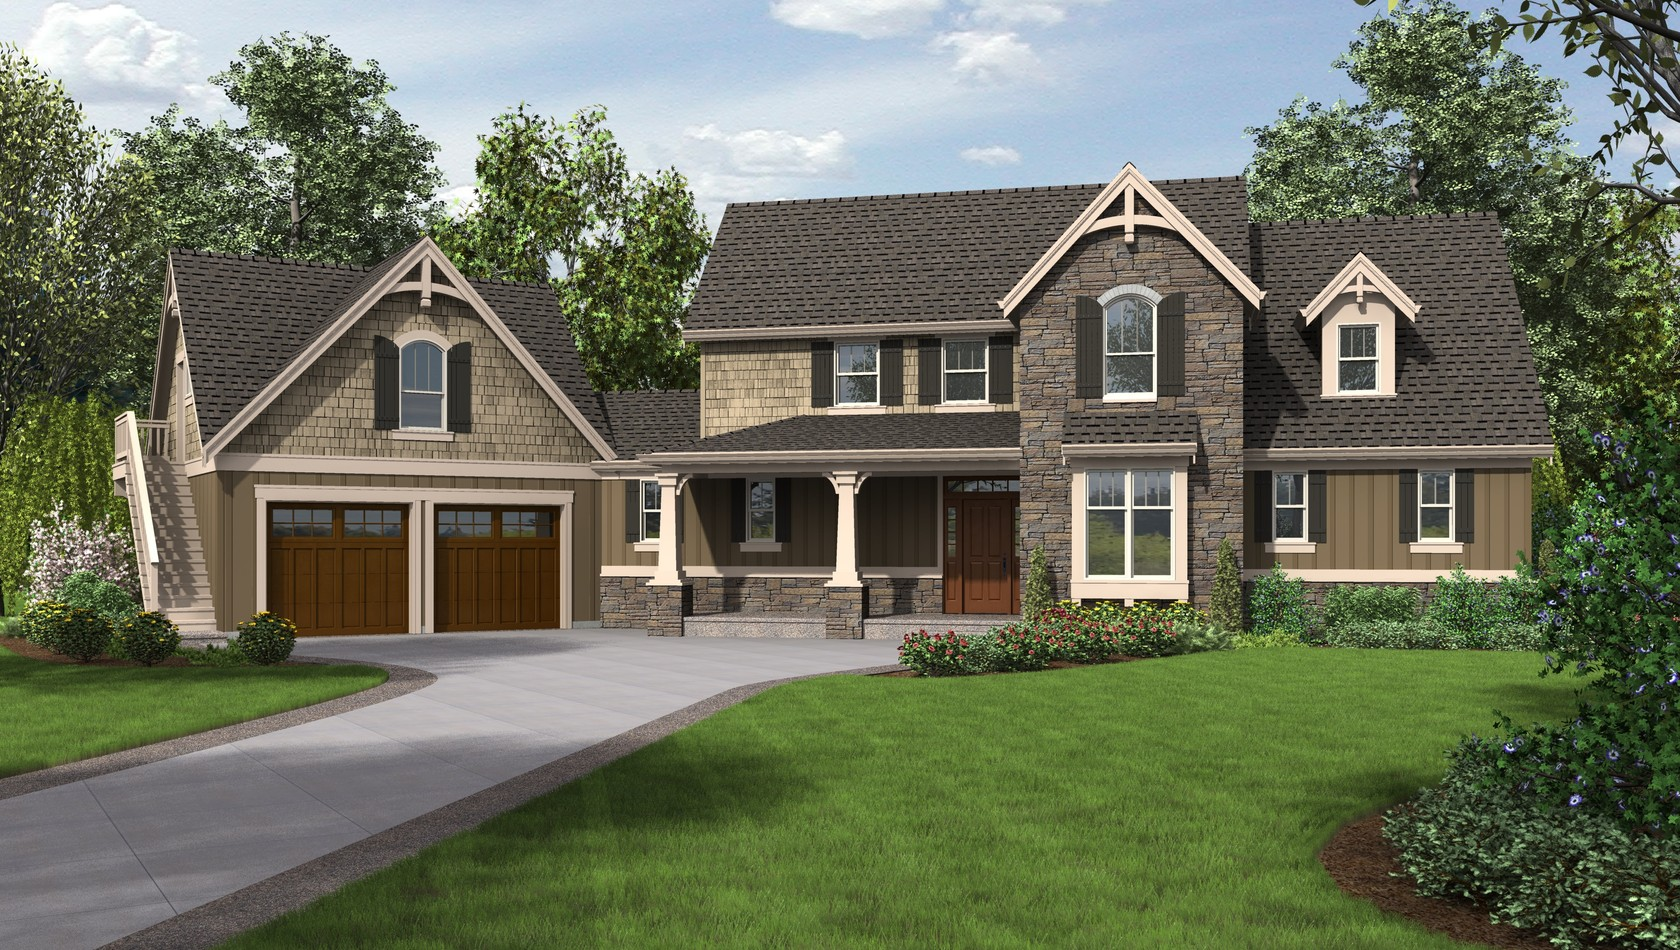 Main image for house plan 22201: The Hartford